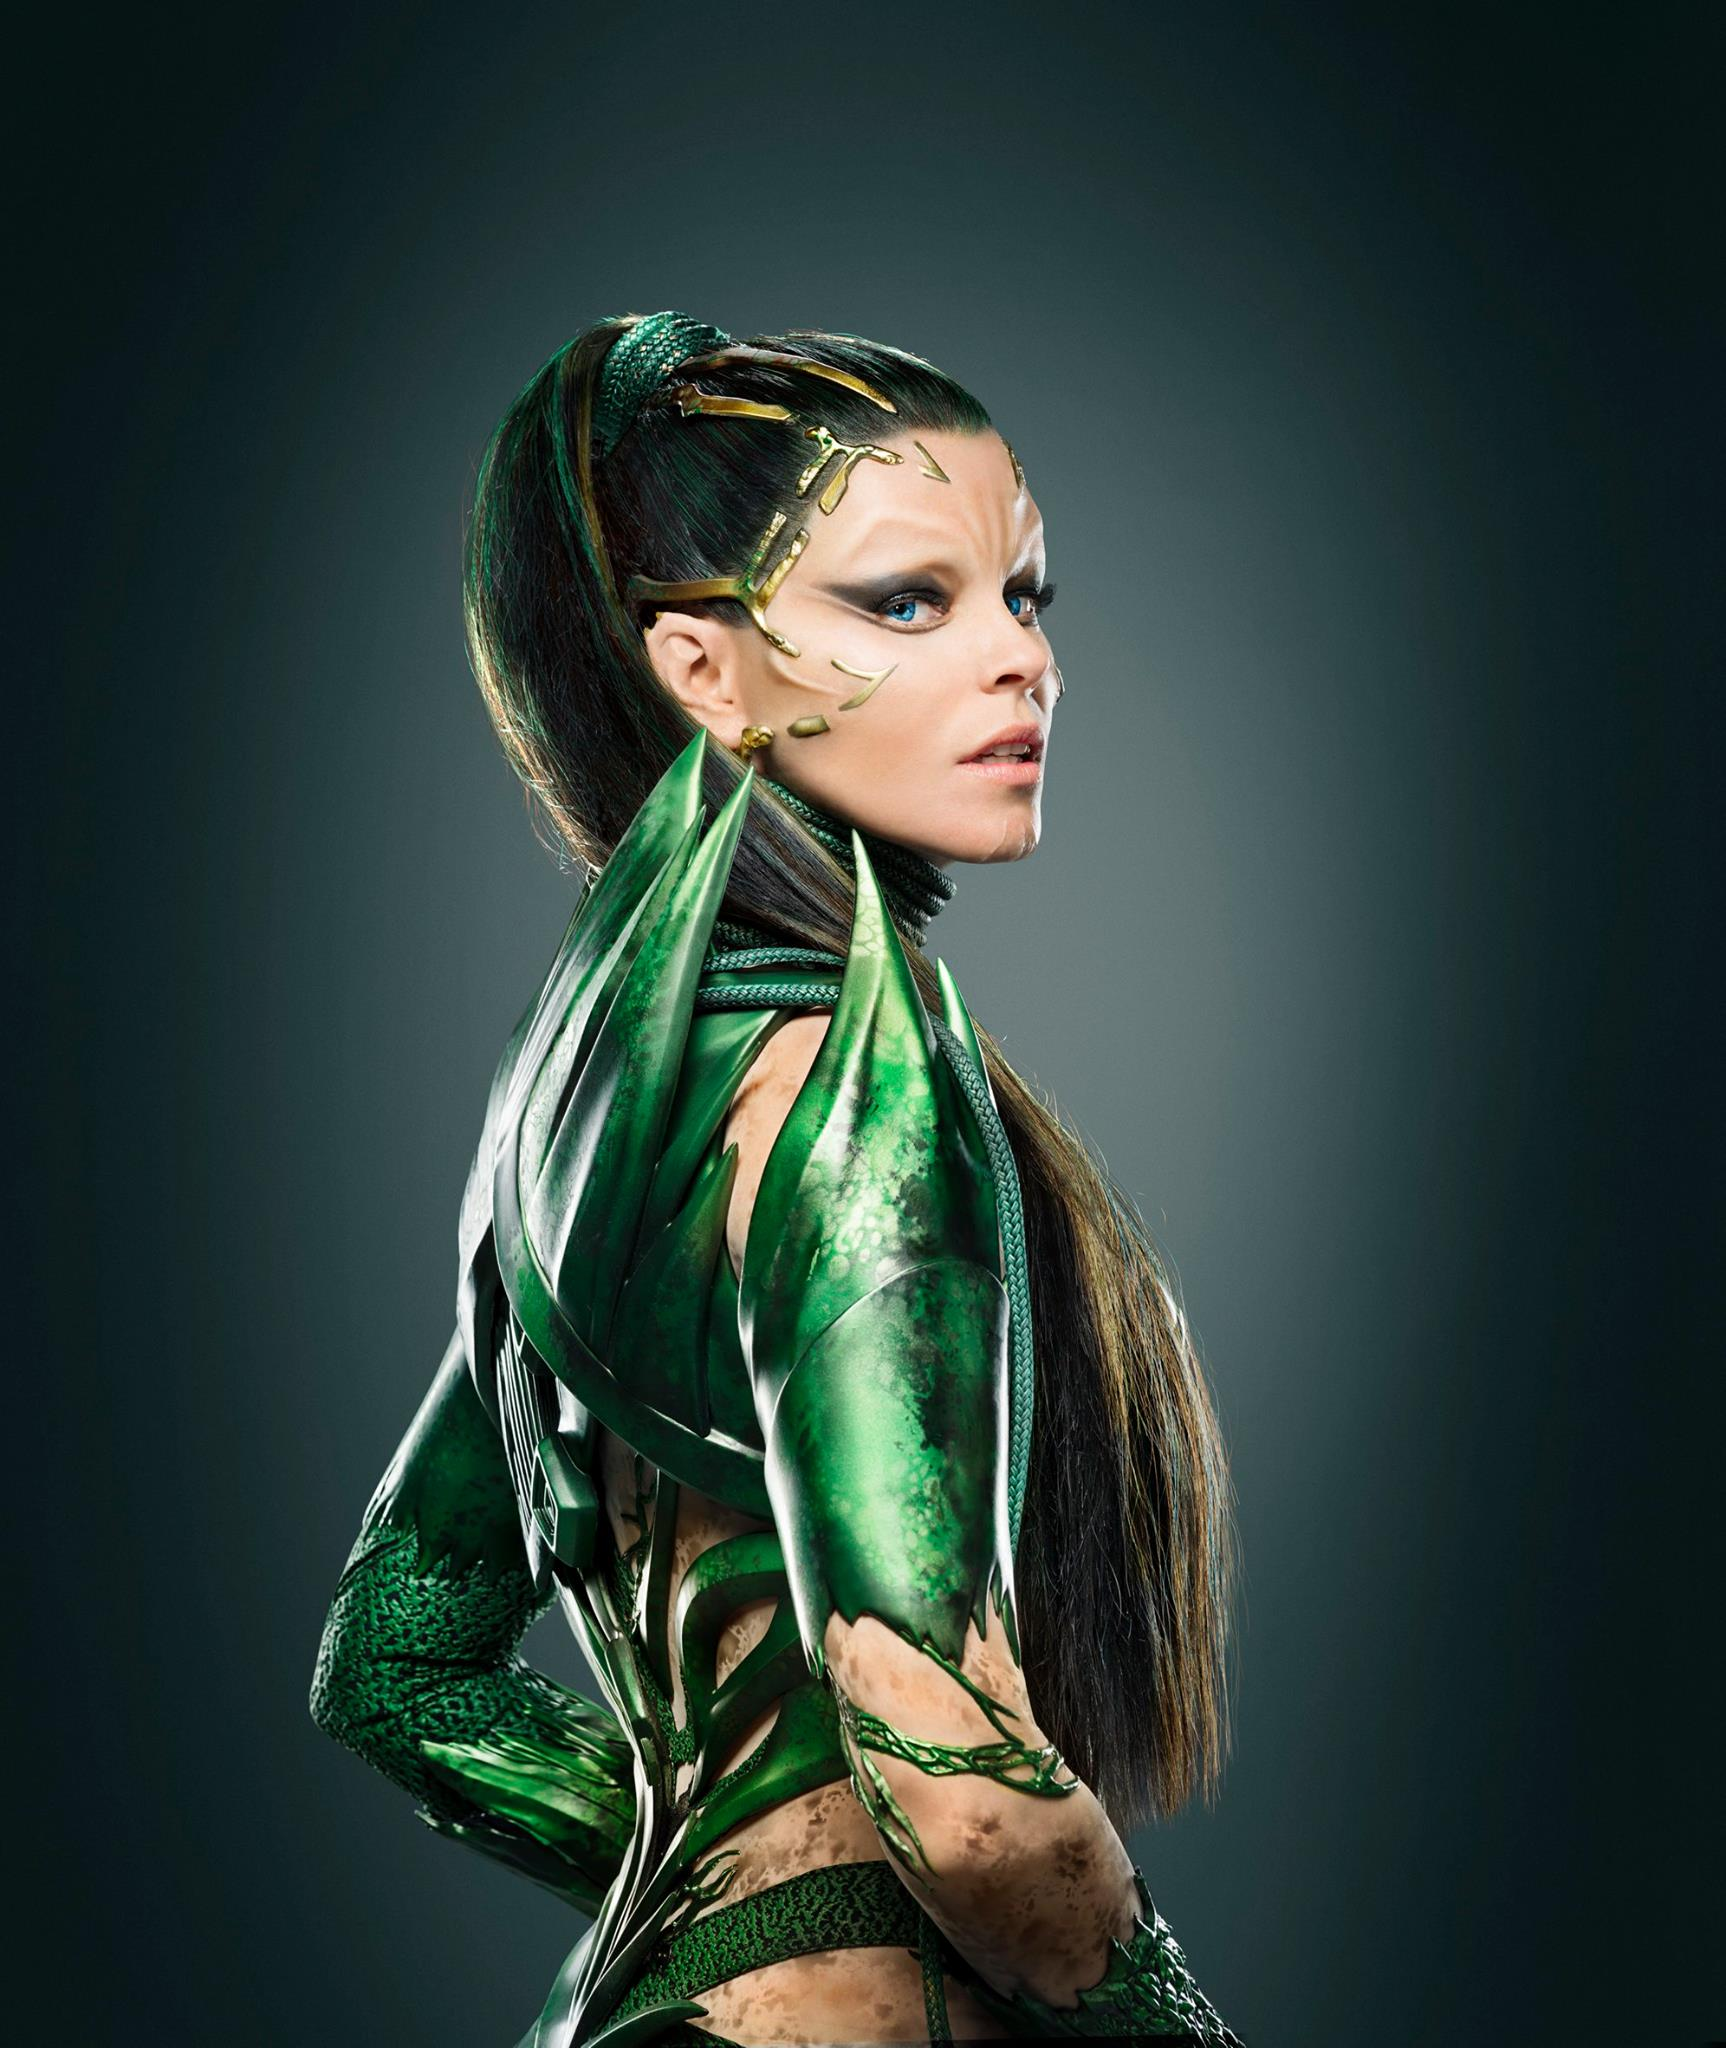 powerrangers-rita-repulsa